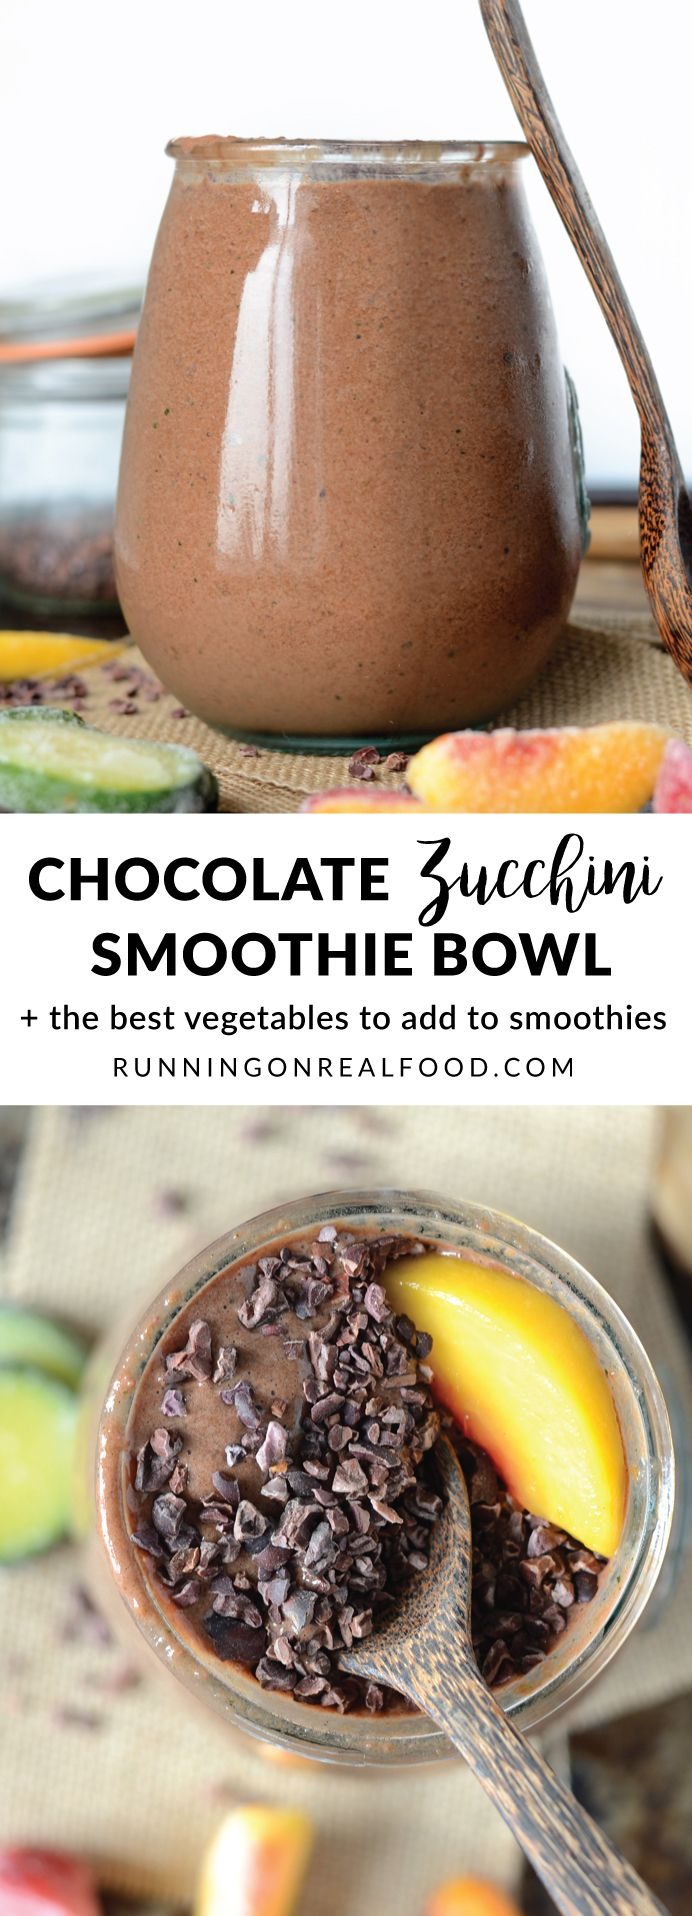 Check out the best veggies to add to smoothies plus try this thick, creamy and decadent, chocolate zucchini smoothie bowl made with simple, everyday, healthy ingredients! Vegan, low sugar, high protein. CHECK IT OUT: http://runningonrealfood.com/best-vege